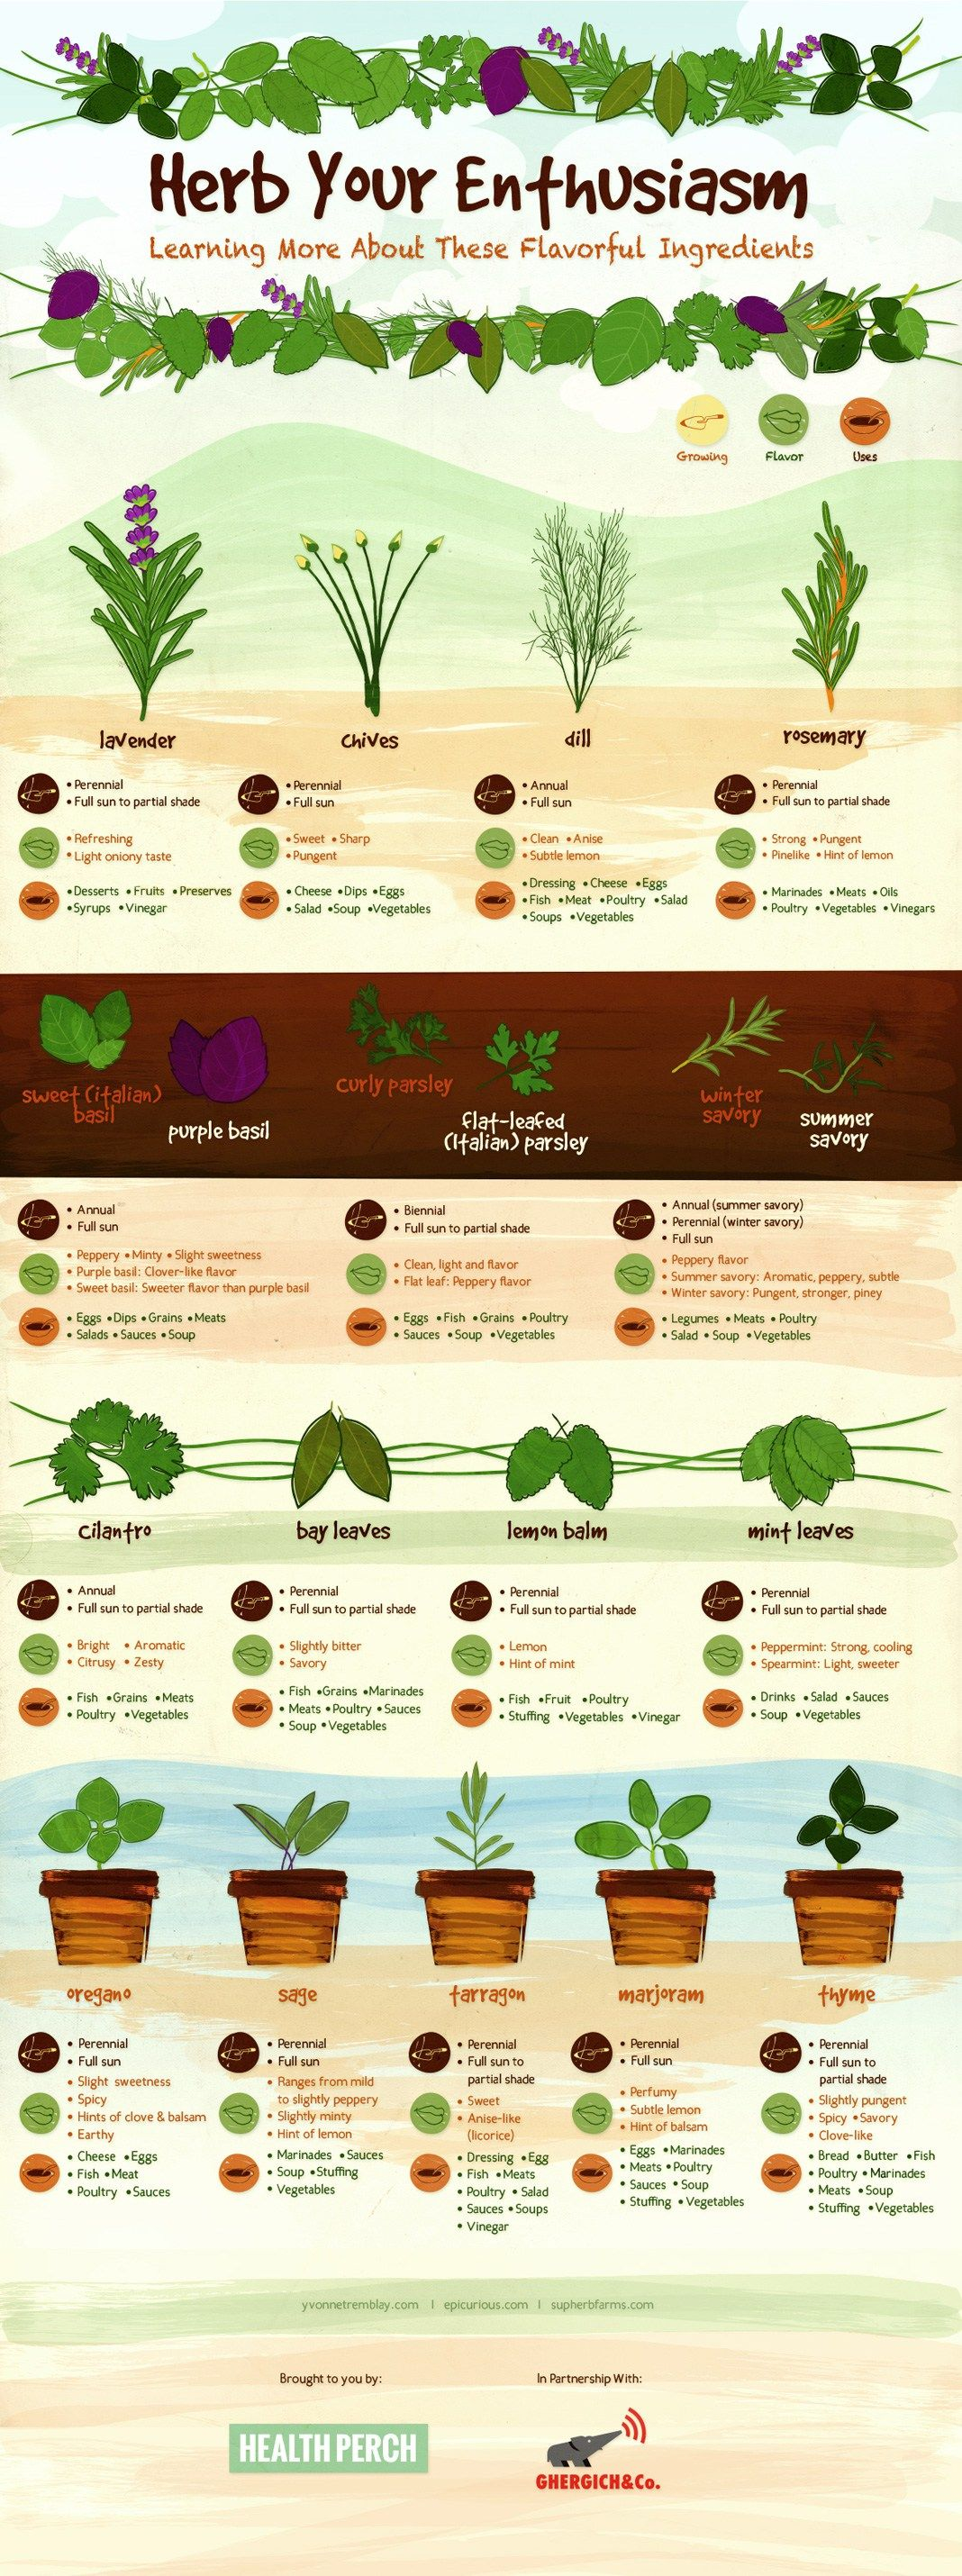 Using Flavorful Culinary Herbs Herbal Academy Of New England Growing Herbs Indoors Best Herbs To Grow Culinary Herbs